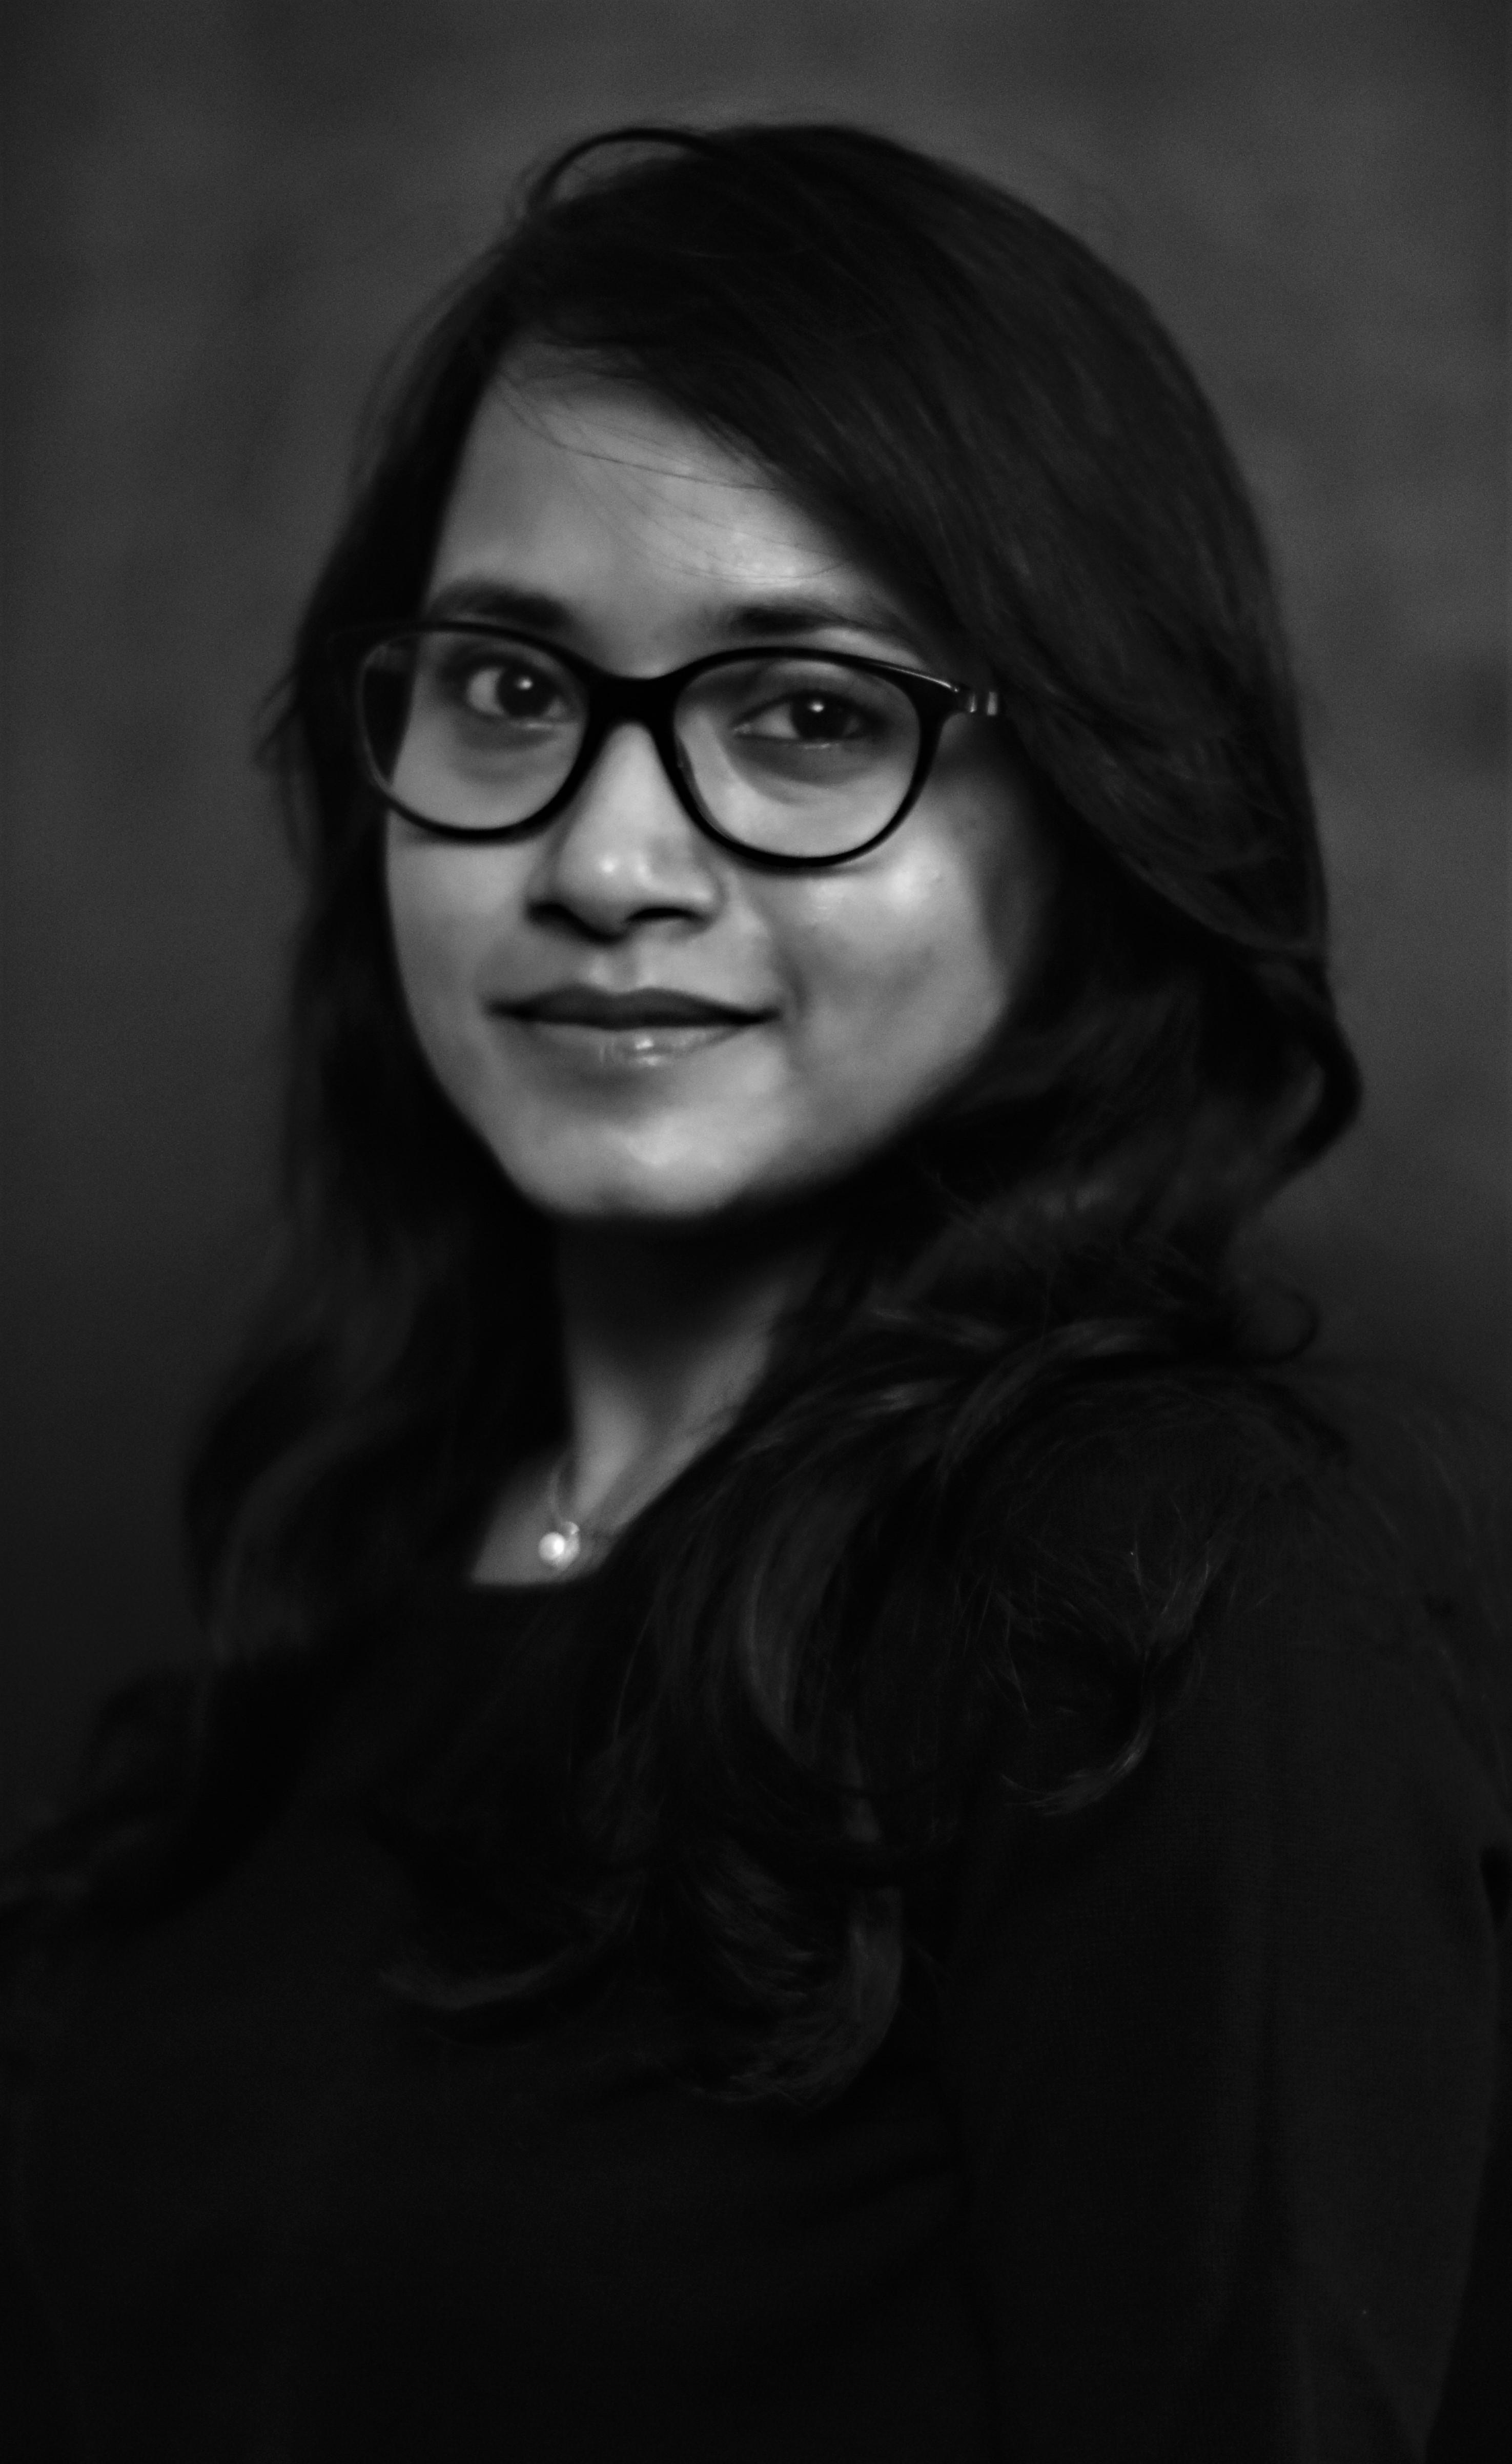 The Department of Architecture is pleased to welcome Dr Ronita Bardhan who is joining us as a University Lecturer in Sustainability in the Built Environment